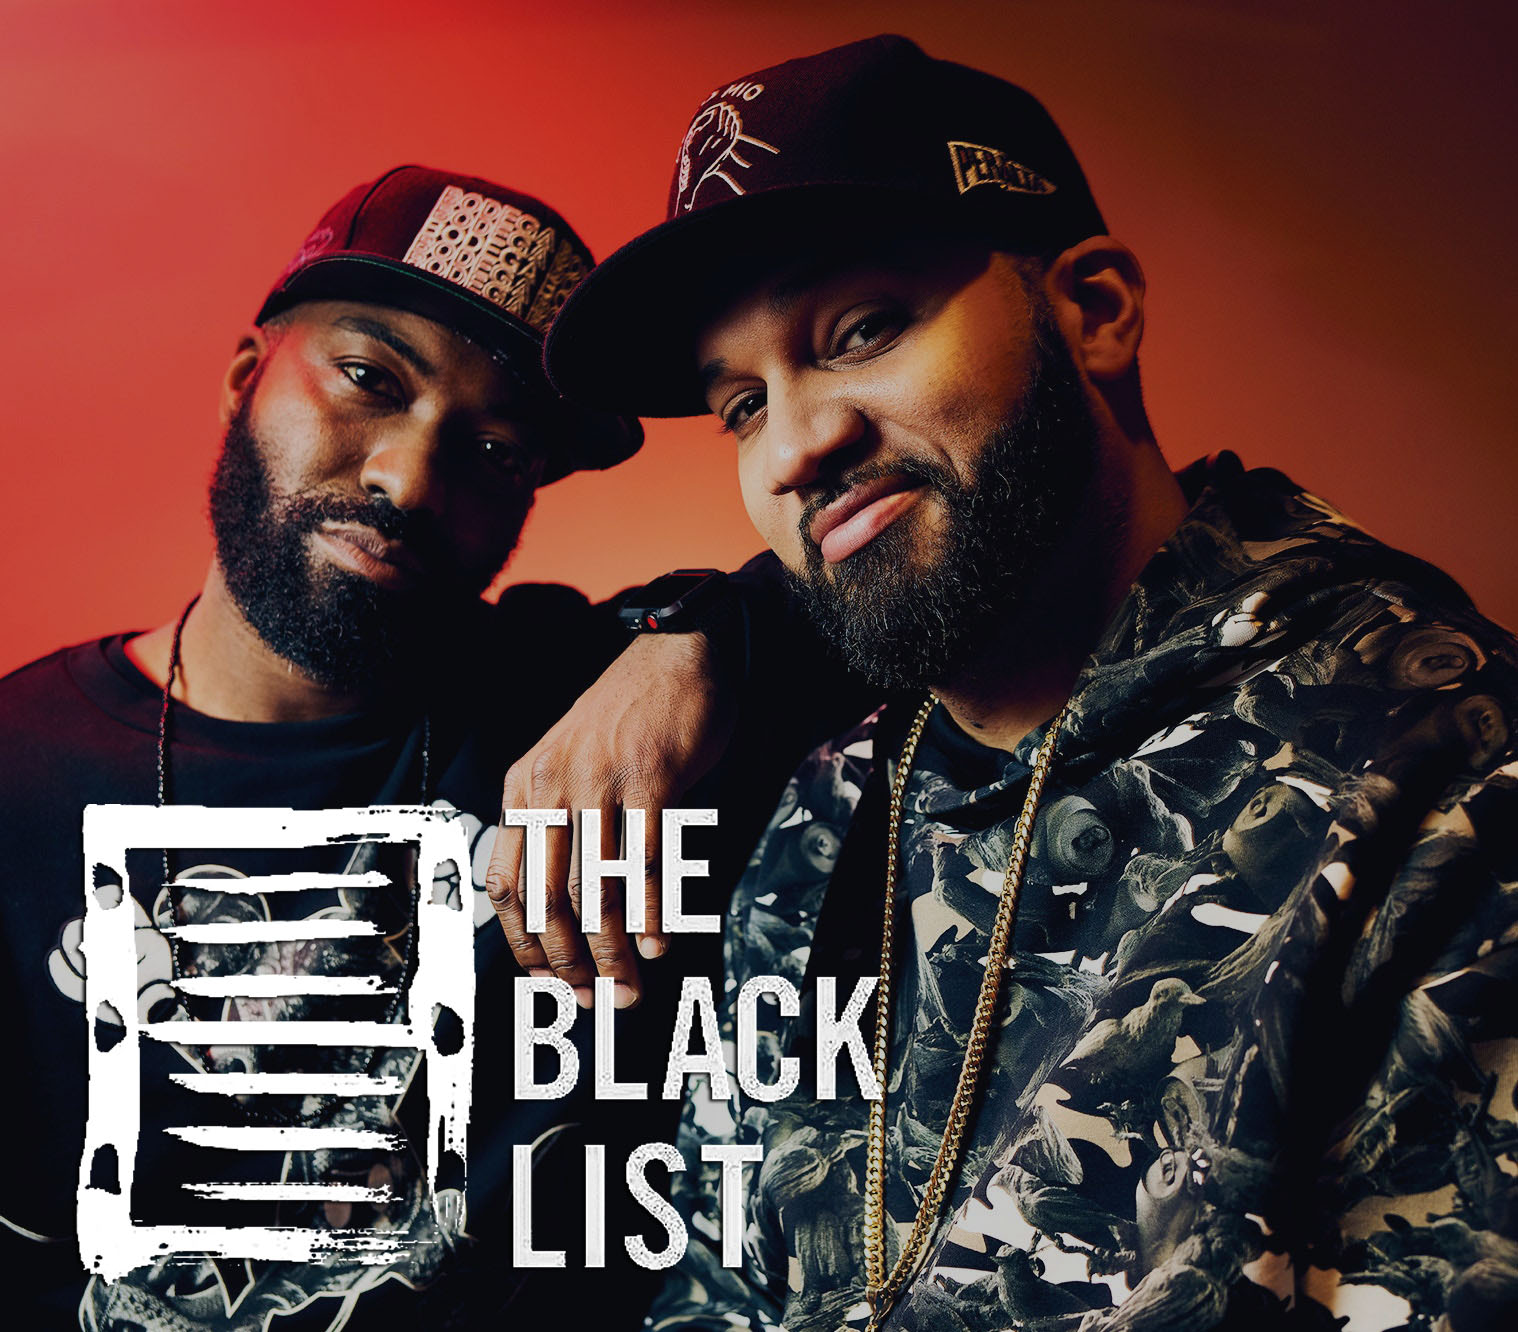 livinglifefearless.co: 2020's Black List – of best unproduced screenplays – is here